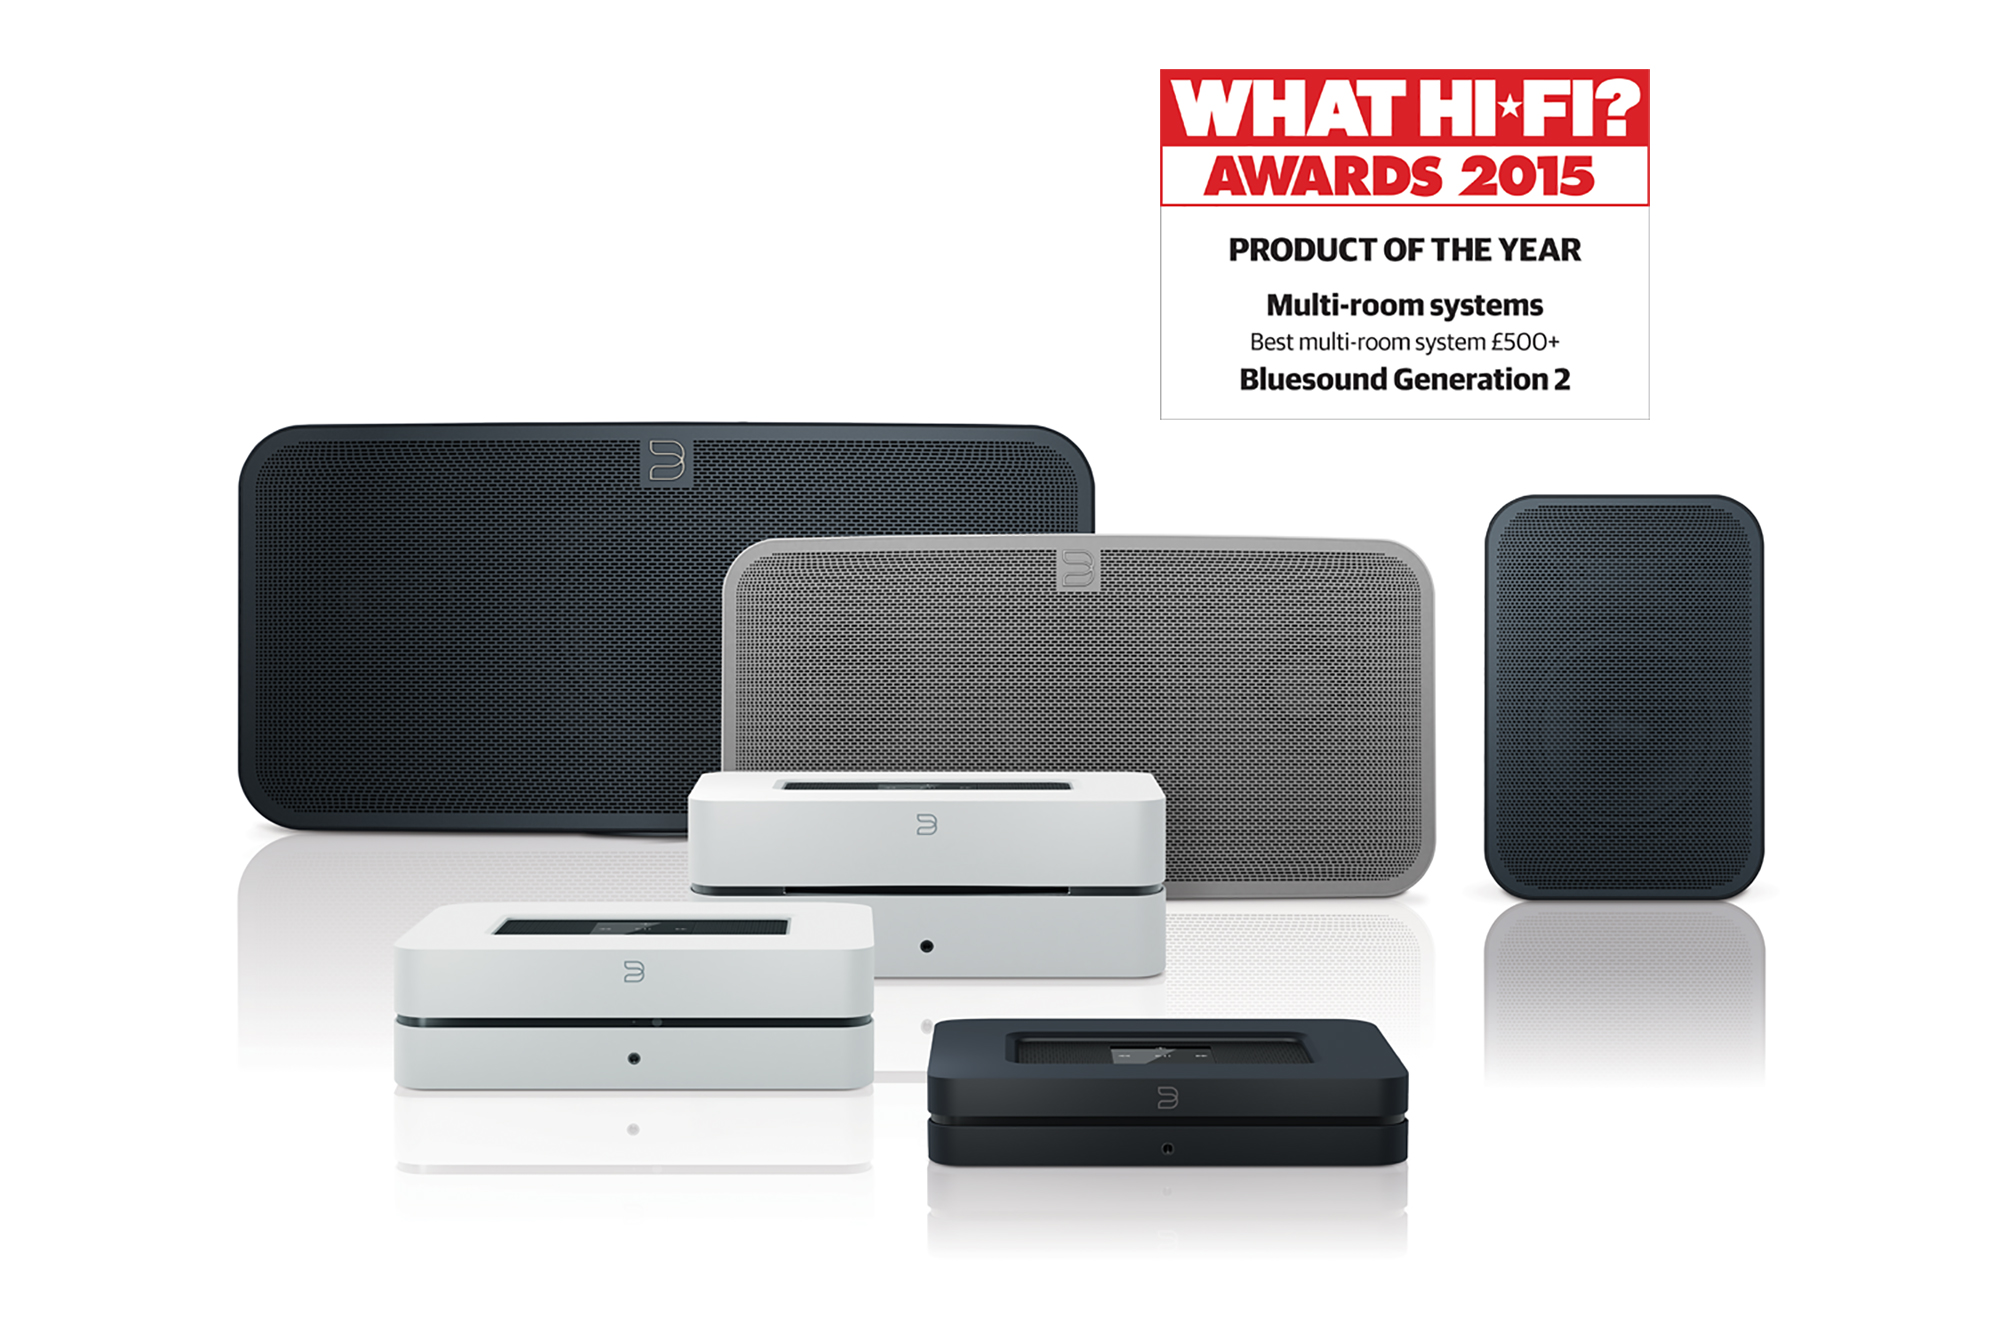 Bluesound Wins 2015 What Hi-Fi? Product of the Year Award